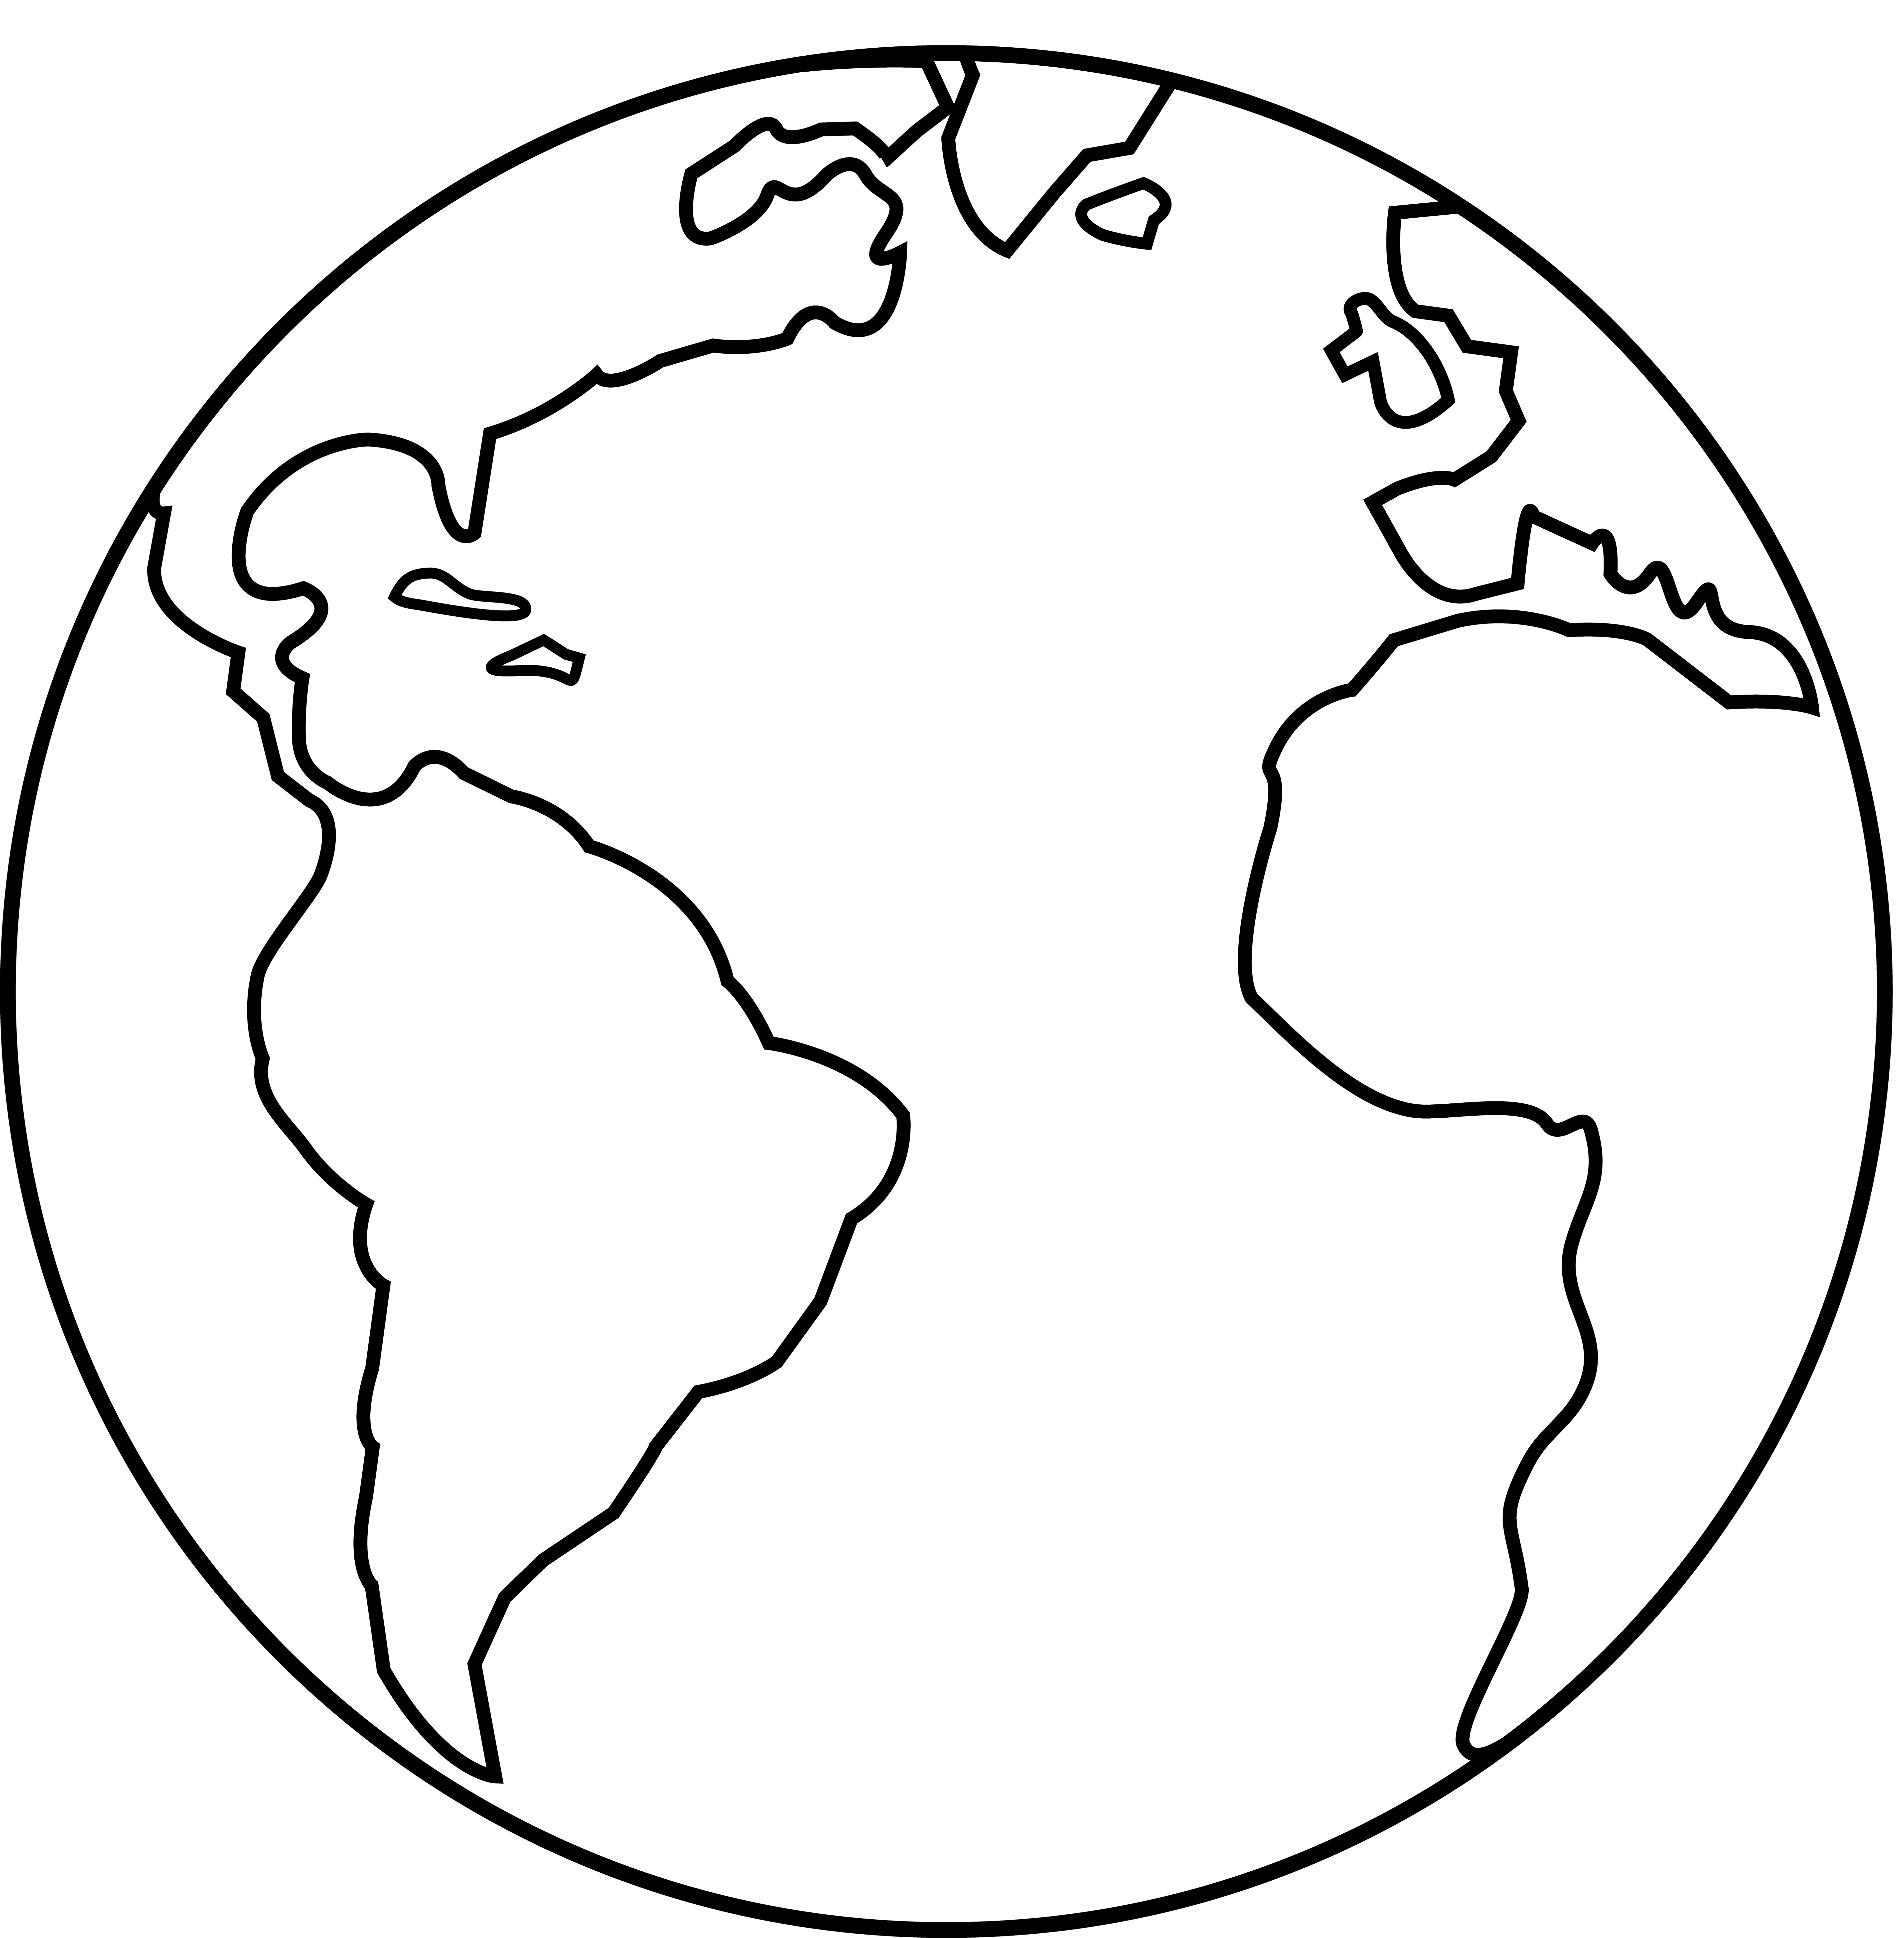 Earth clipart outline, Earth outline Transparent FREE for.